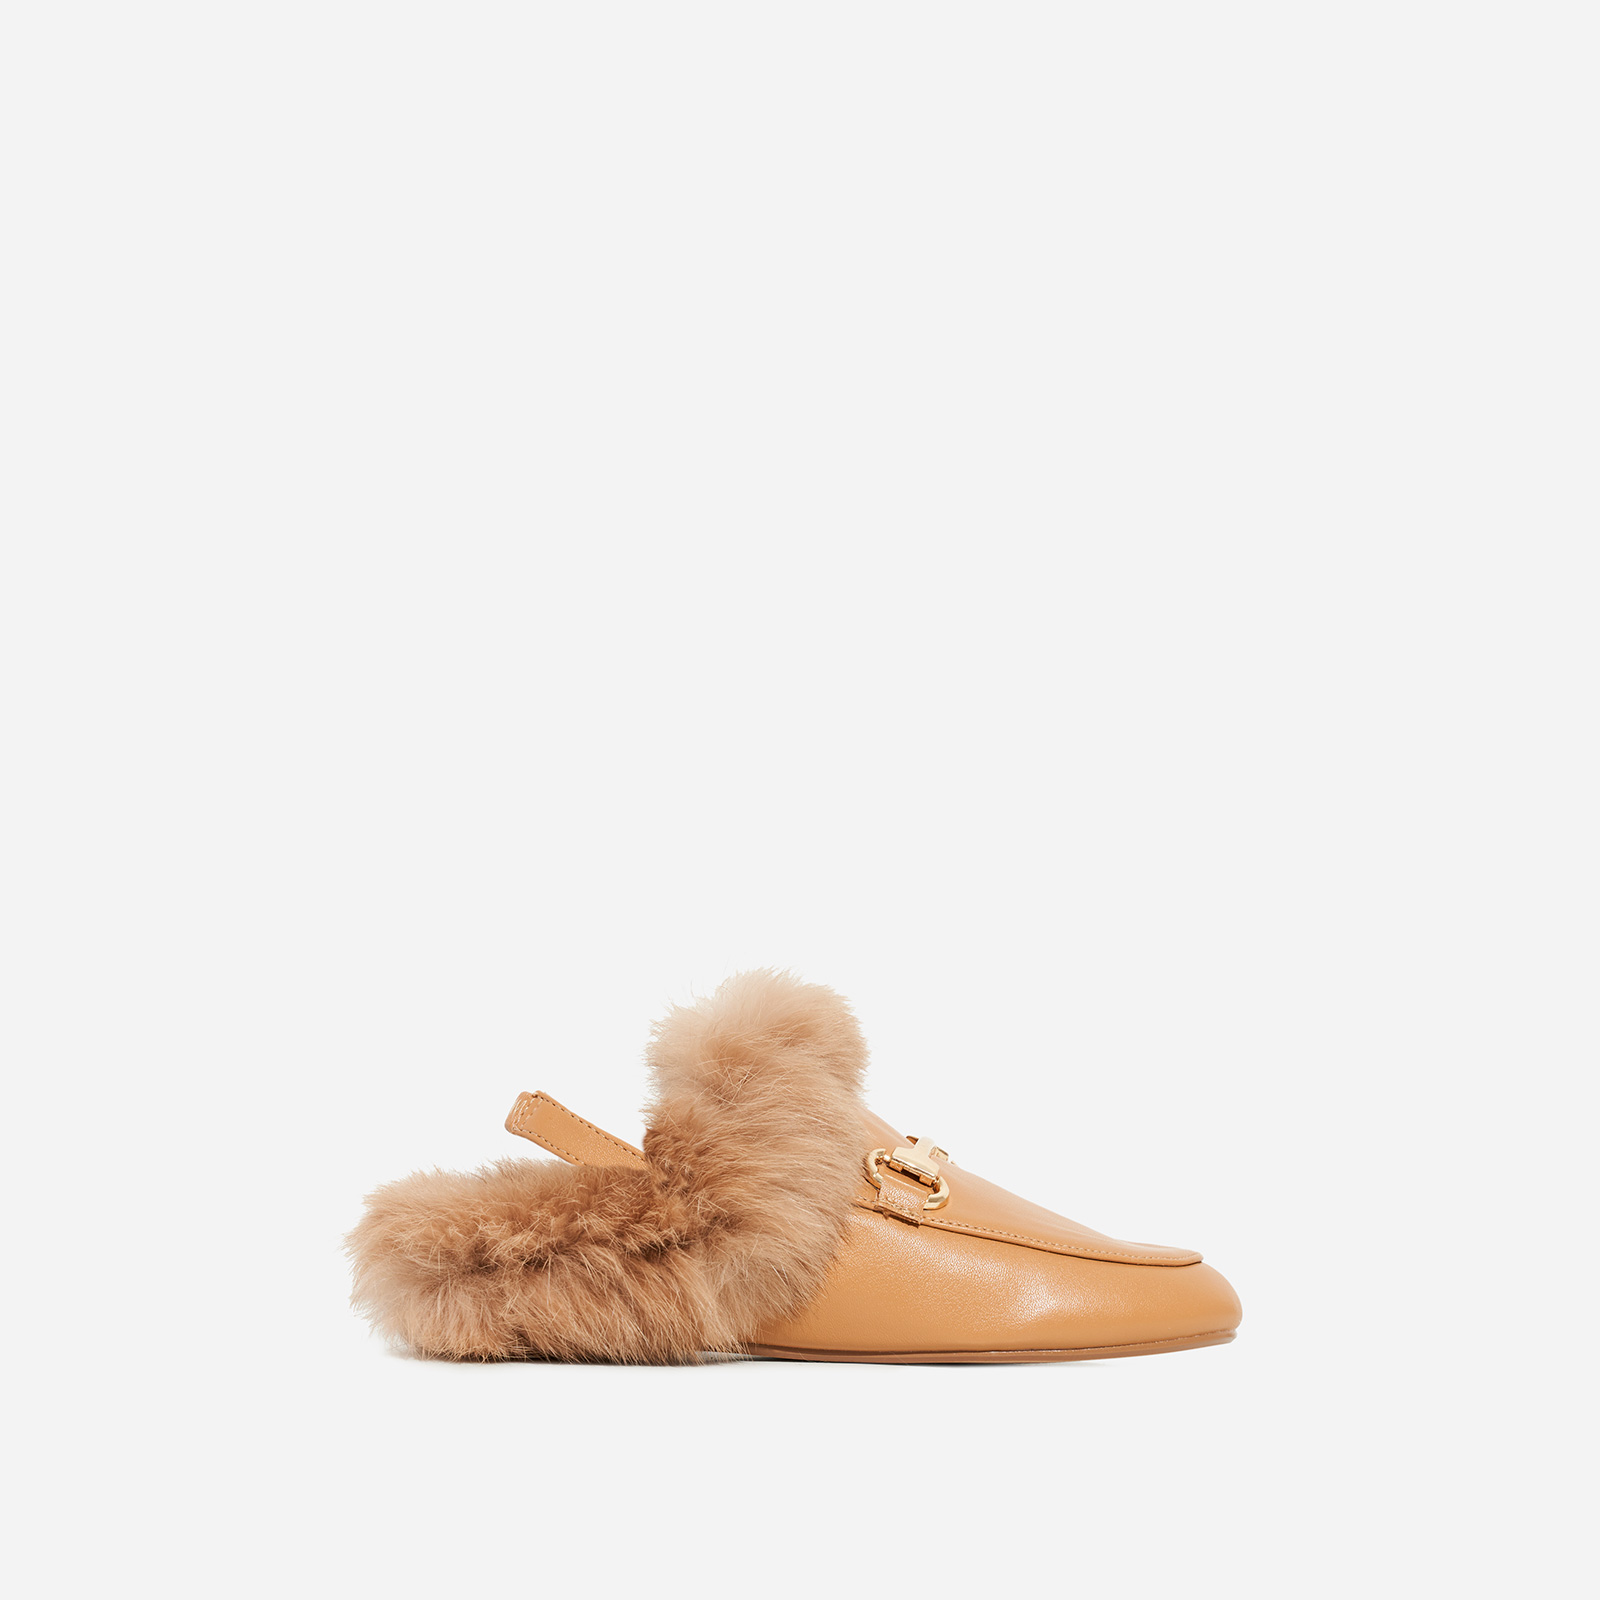 Rio Girl's Sling Back Fluffy Flat Mule In Tan Faux Leather